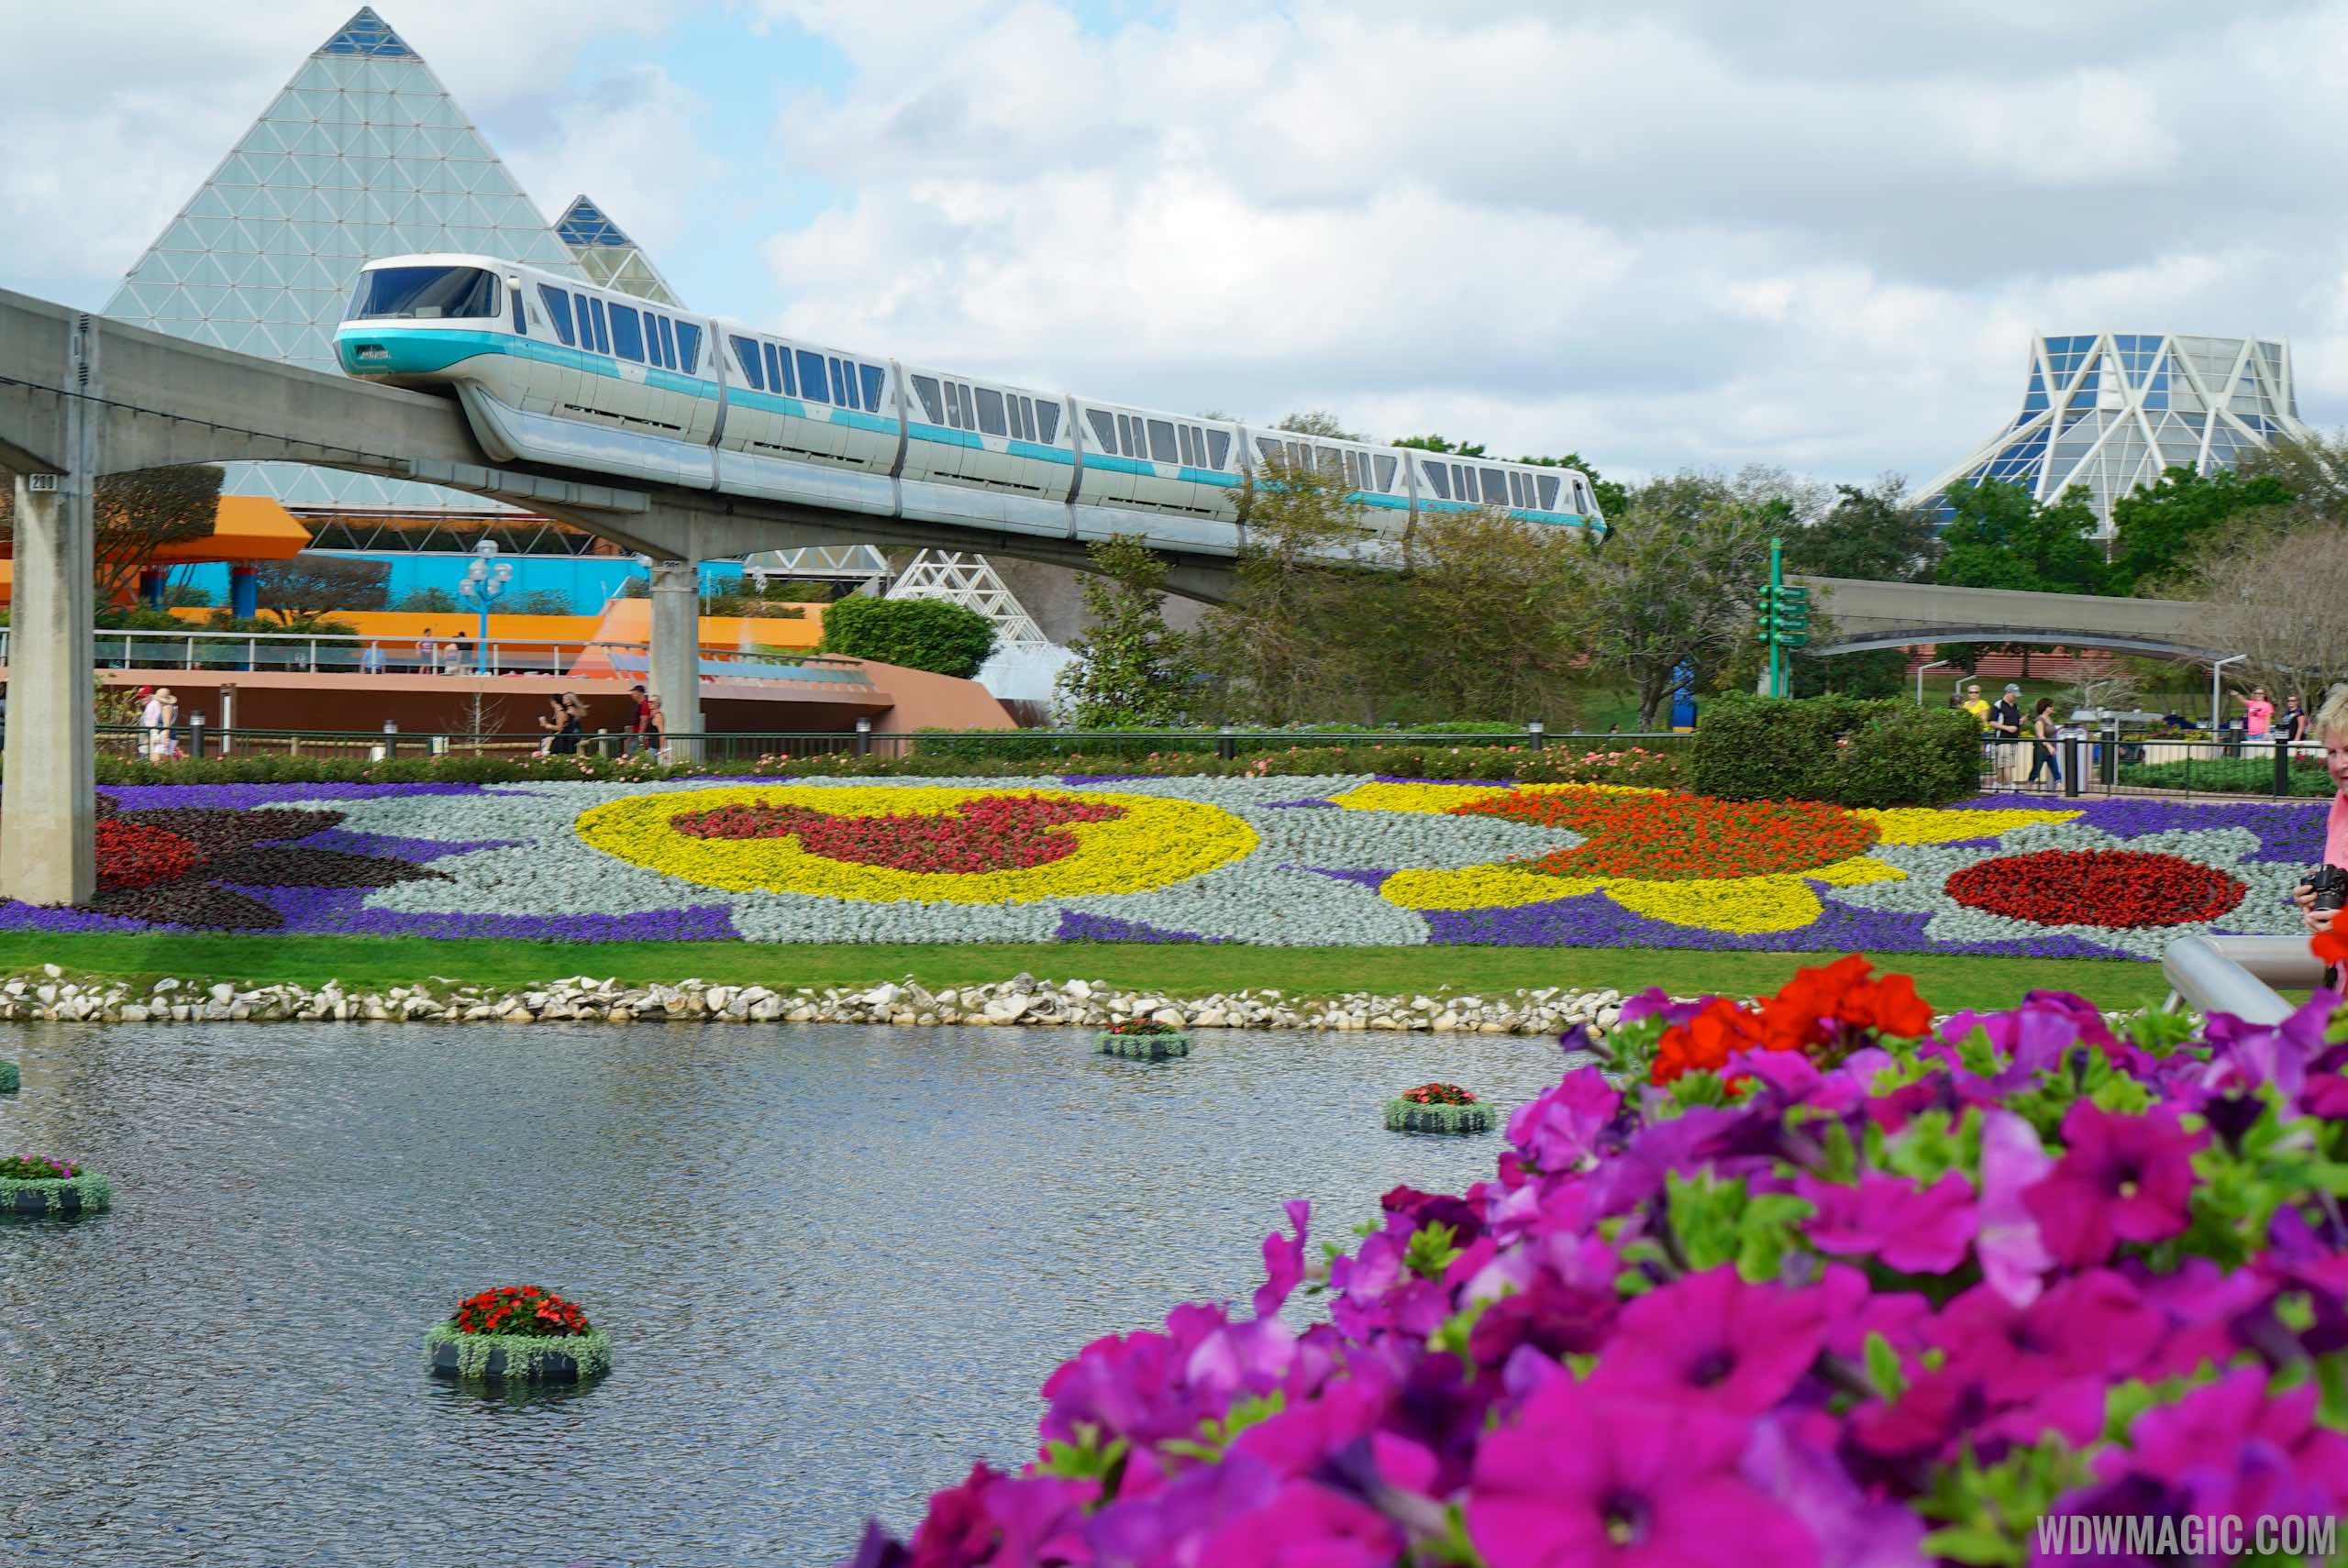 2015 Epcot International Flower and Garden Festival opening day tour